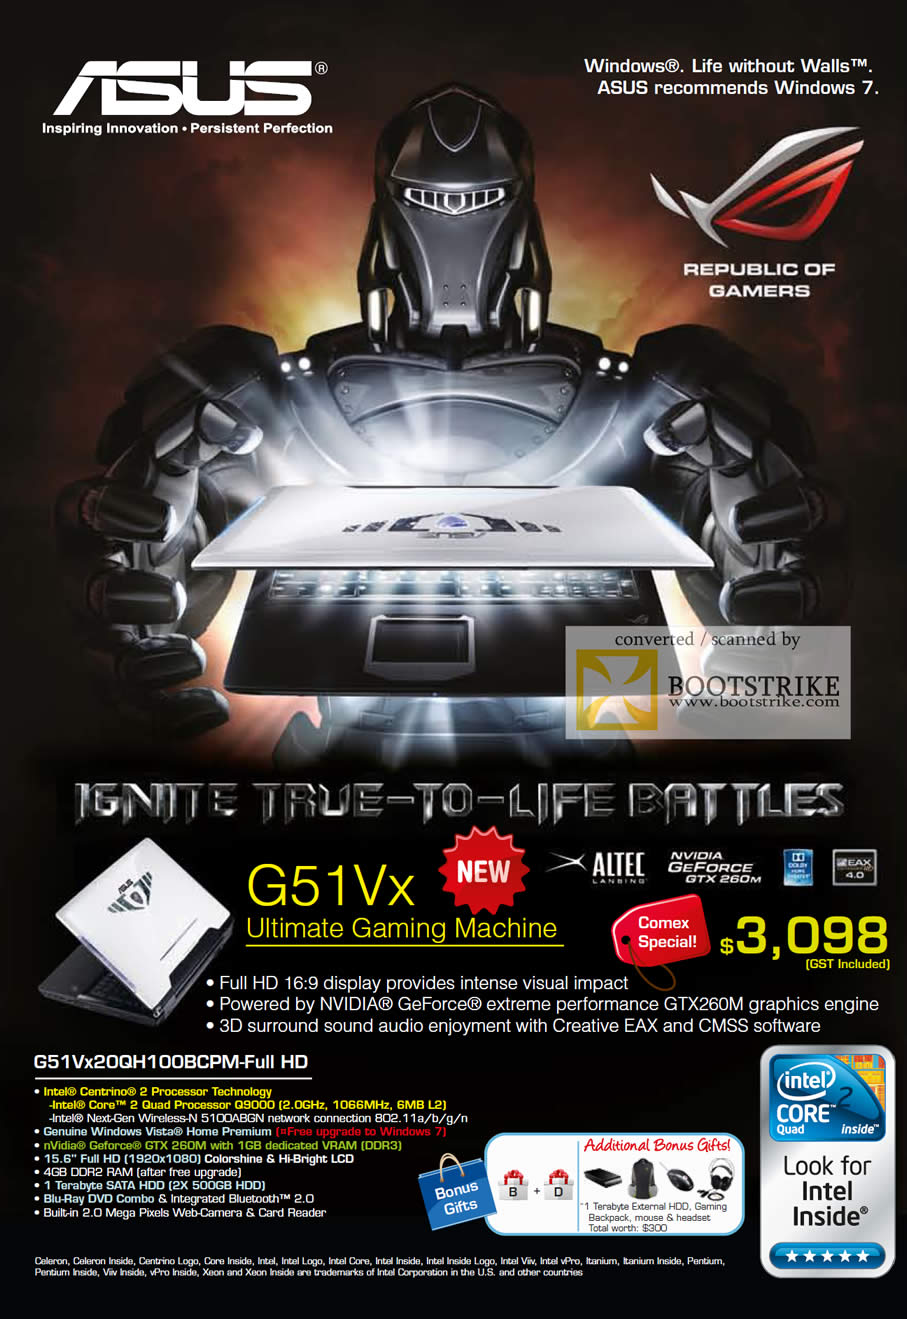 Comex 2009 price list image brochure of ASUS Gaming Notebook G51Vx